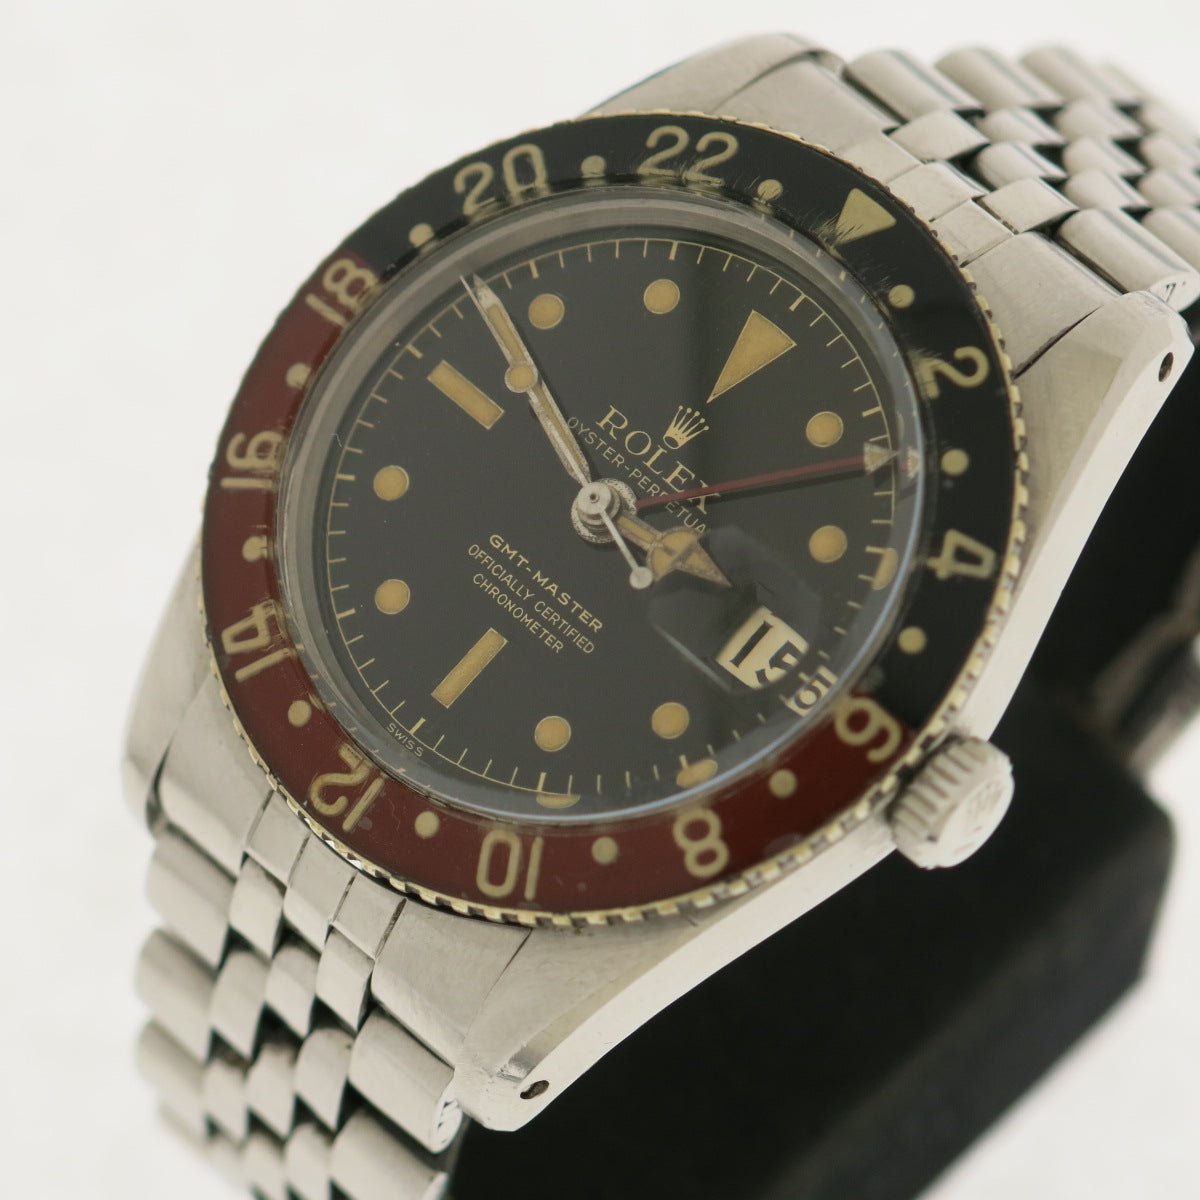 Rolex Oyster Perpetual Gmt Master ref. 6542 Bachelite bezel